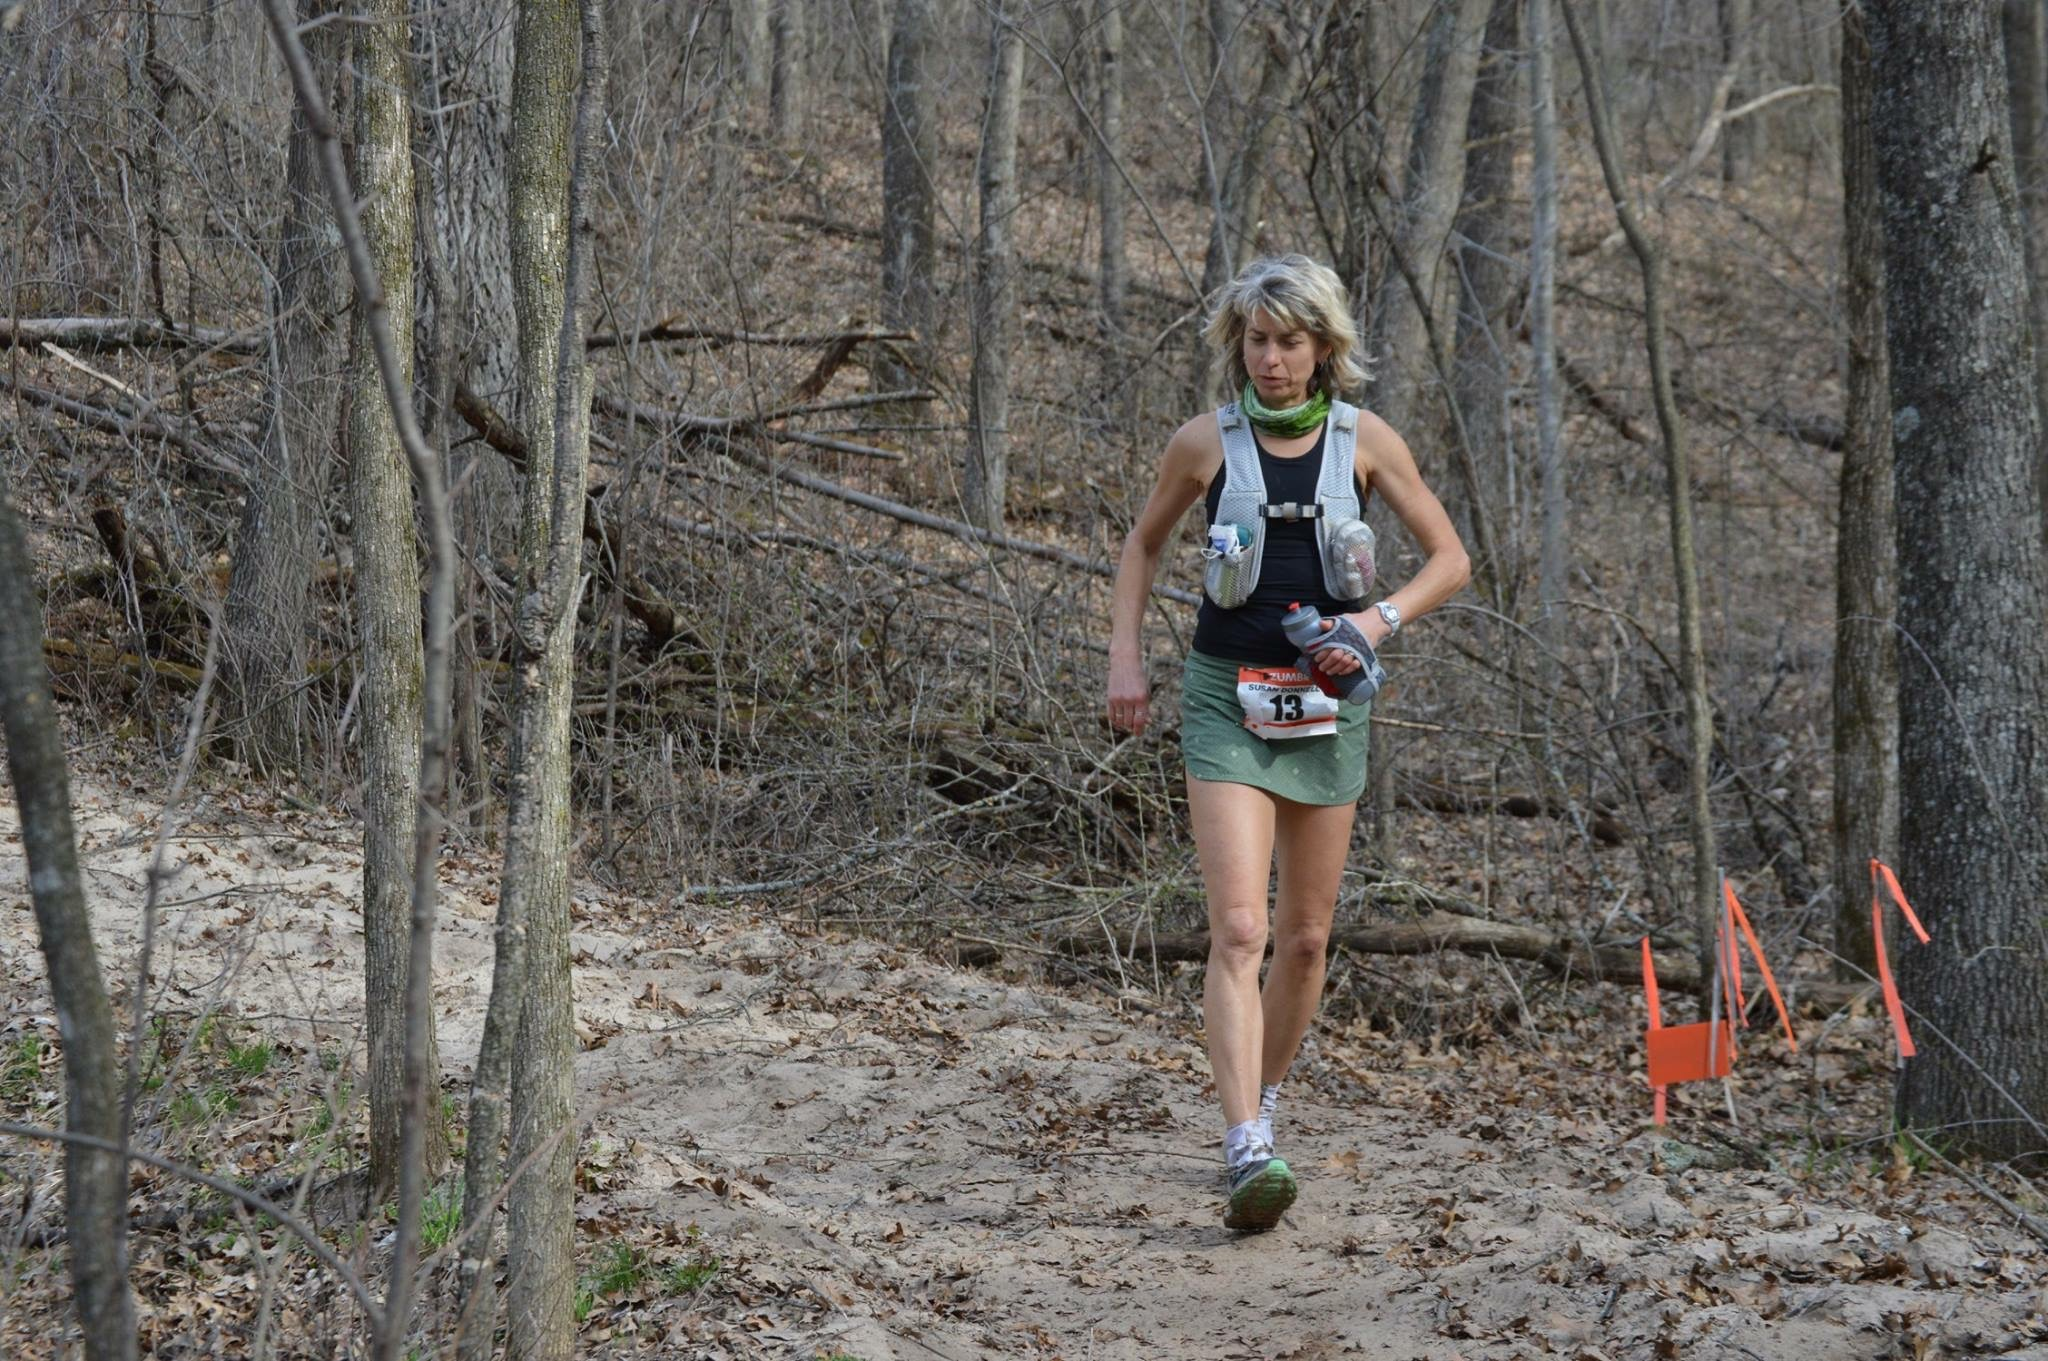 Susan Donnelly runs the mentally tough Zumbro 100 mile ultramarathon